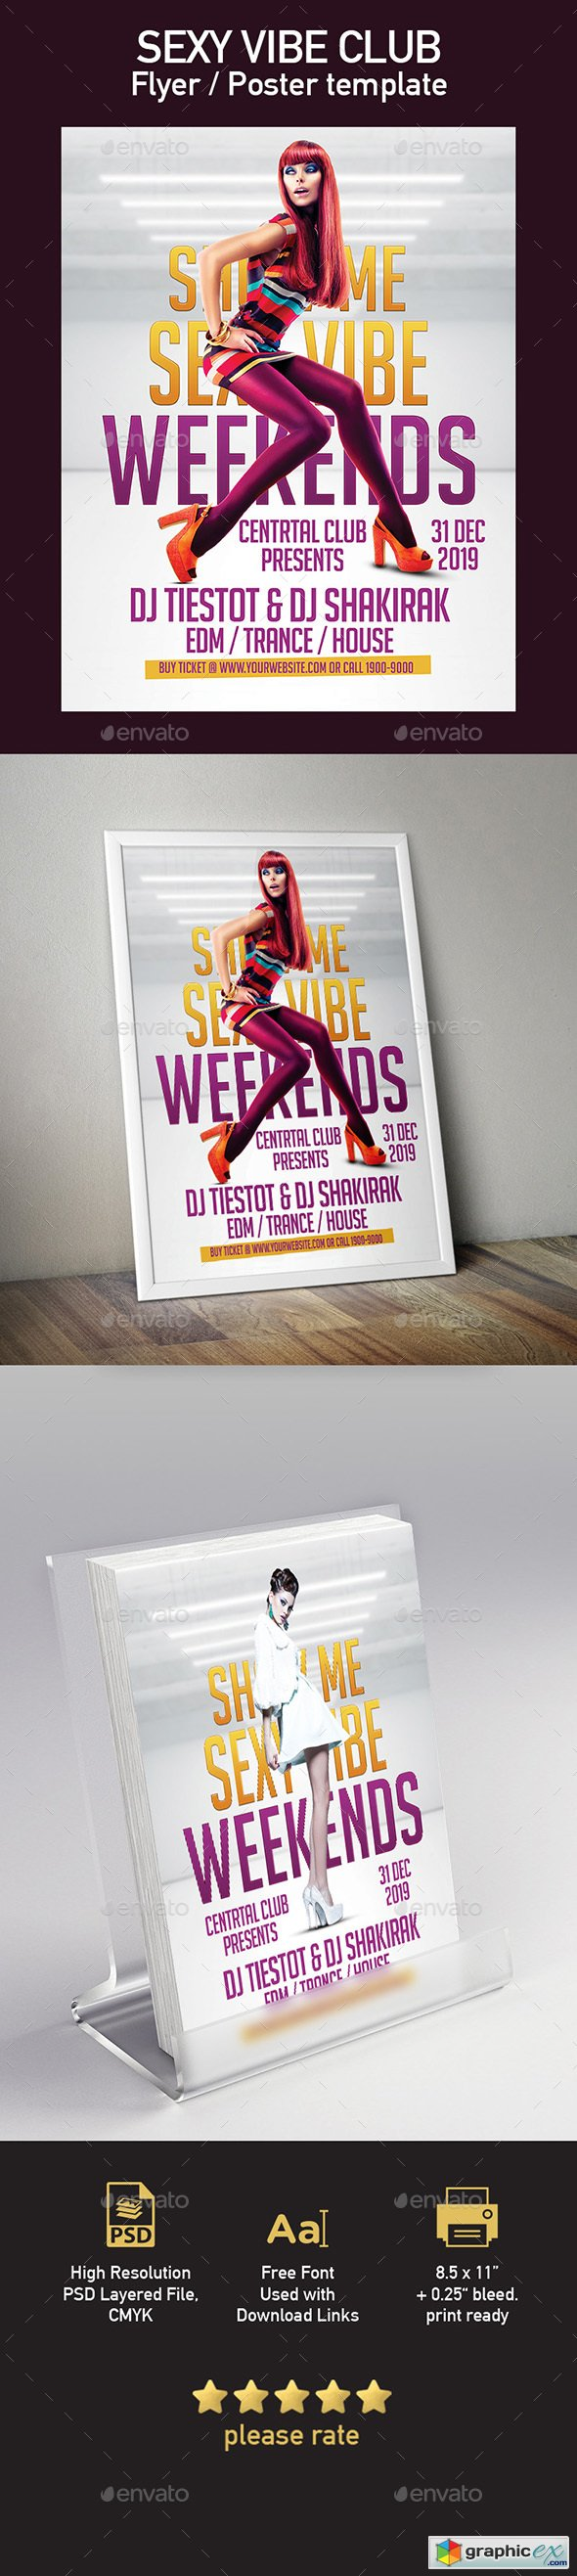 Sexy Vibe Club Flyer Poster Template